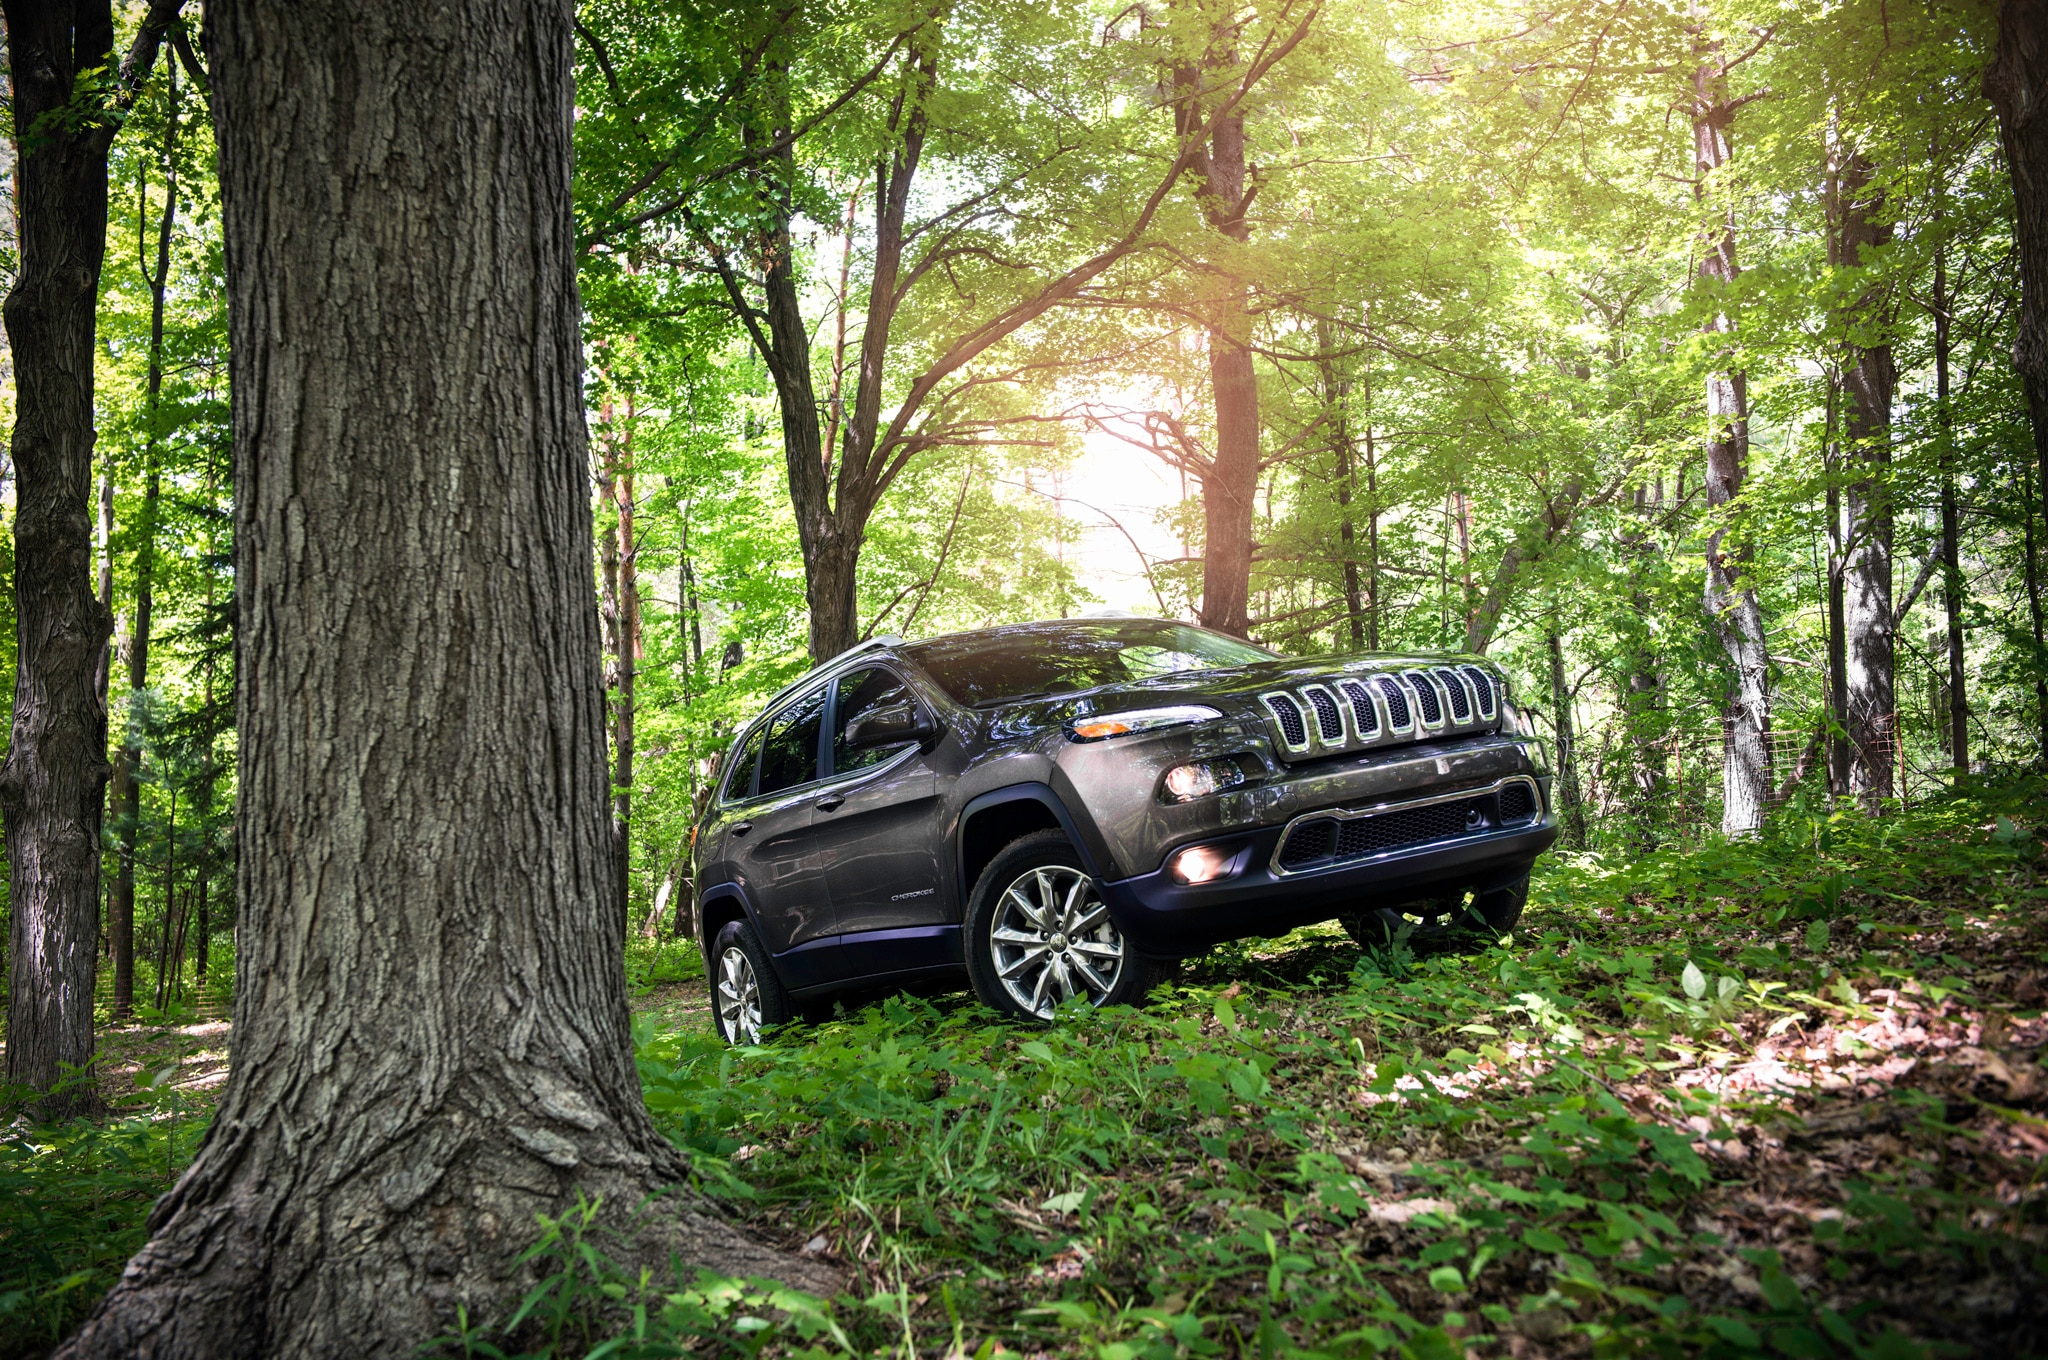 2014 Jeep Cherokee Limited Front Three Quarters In Forest 021